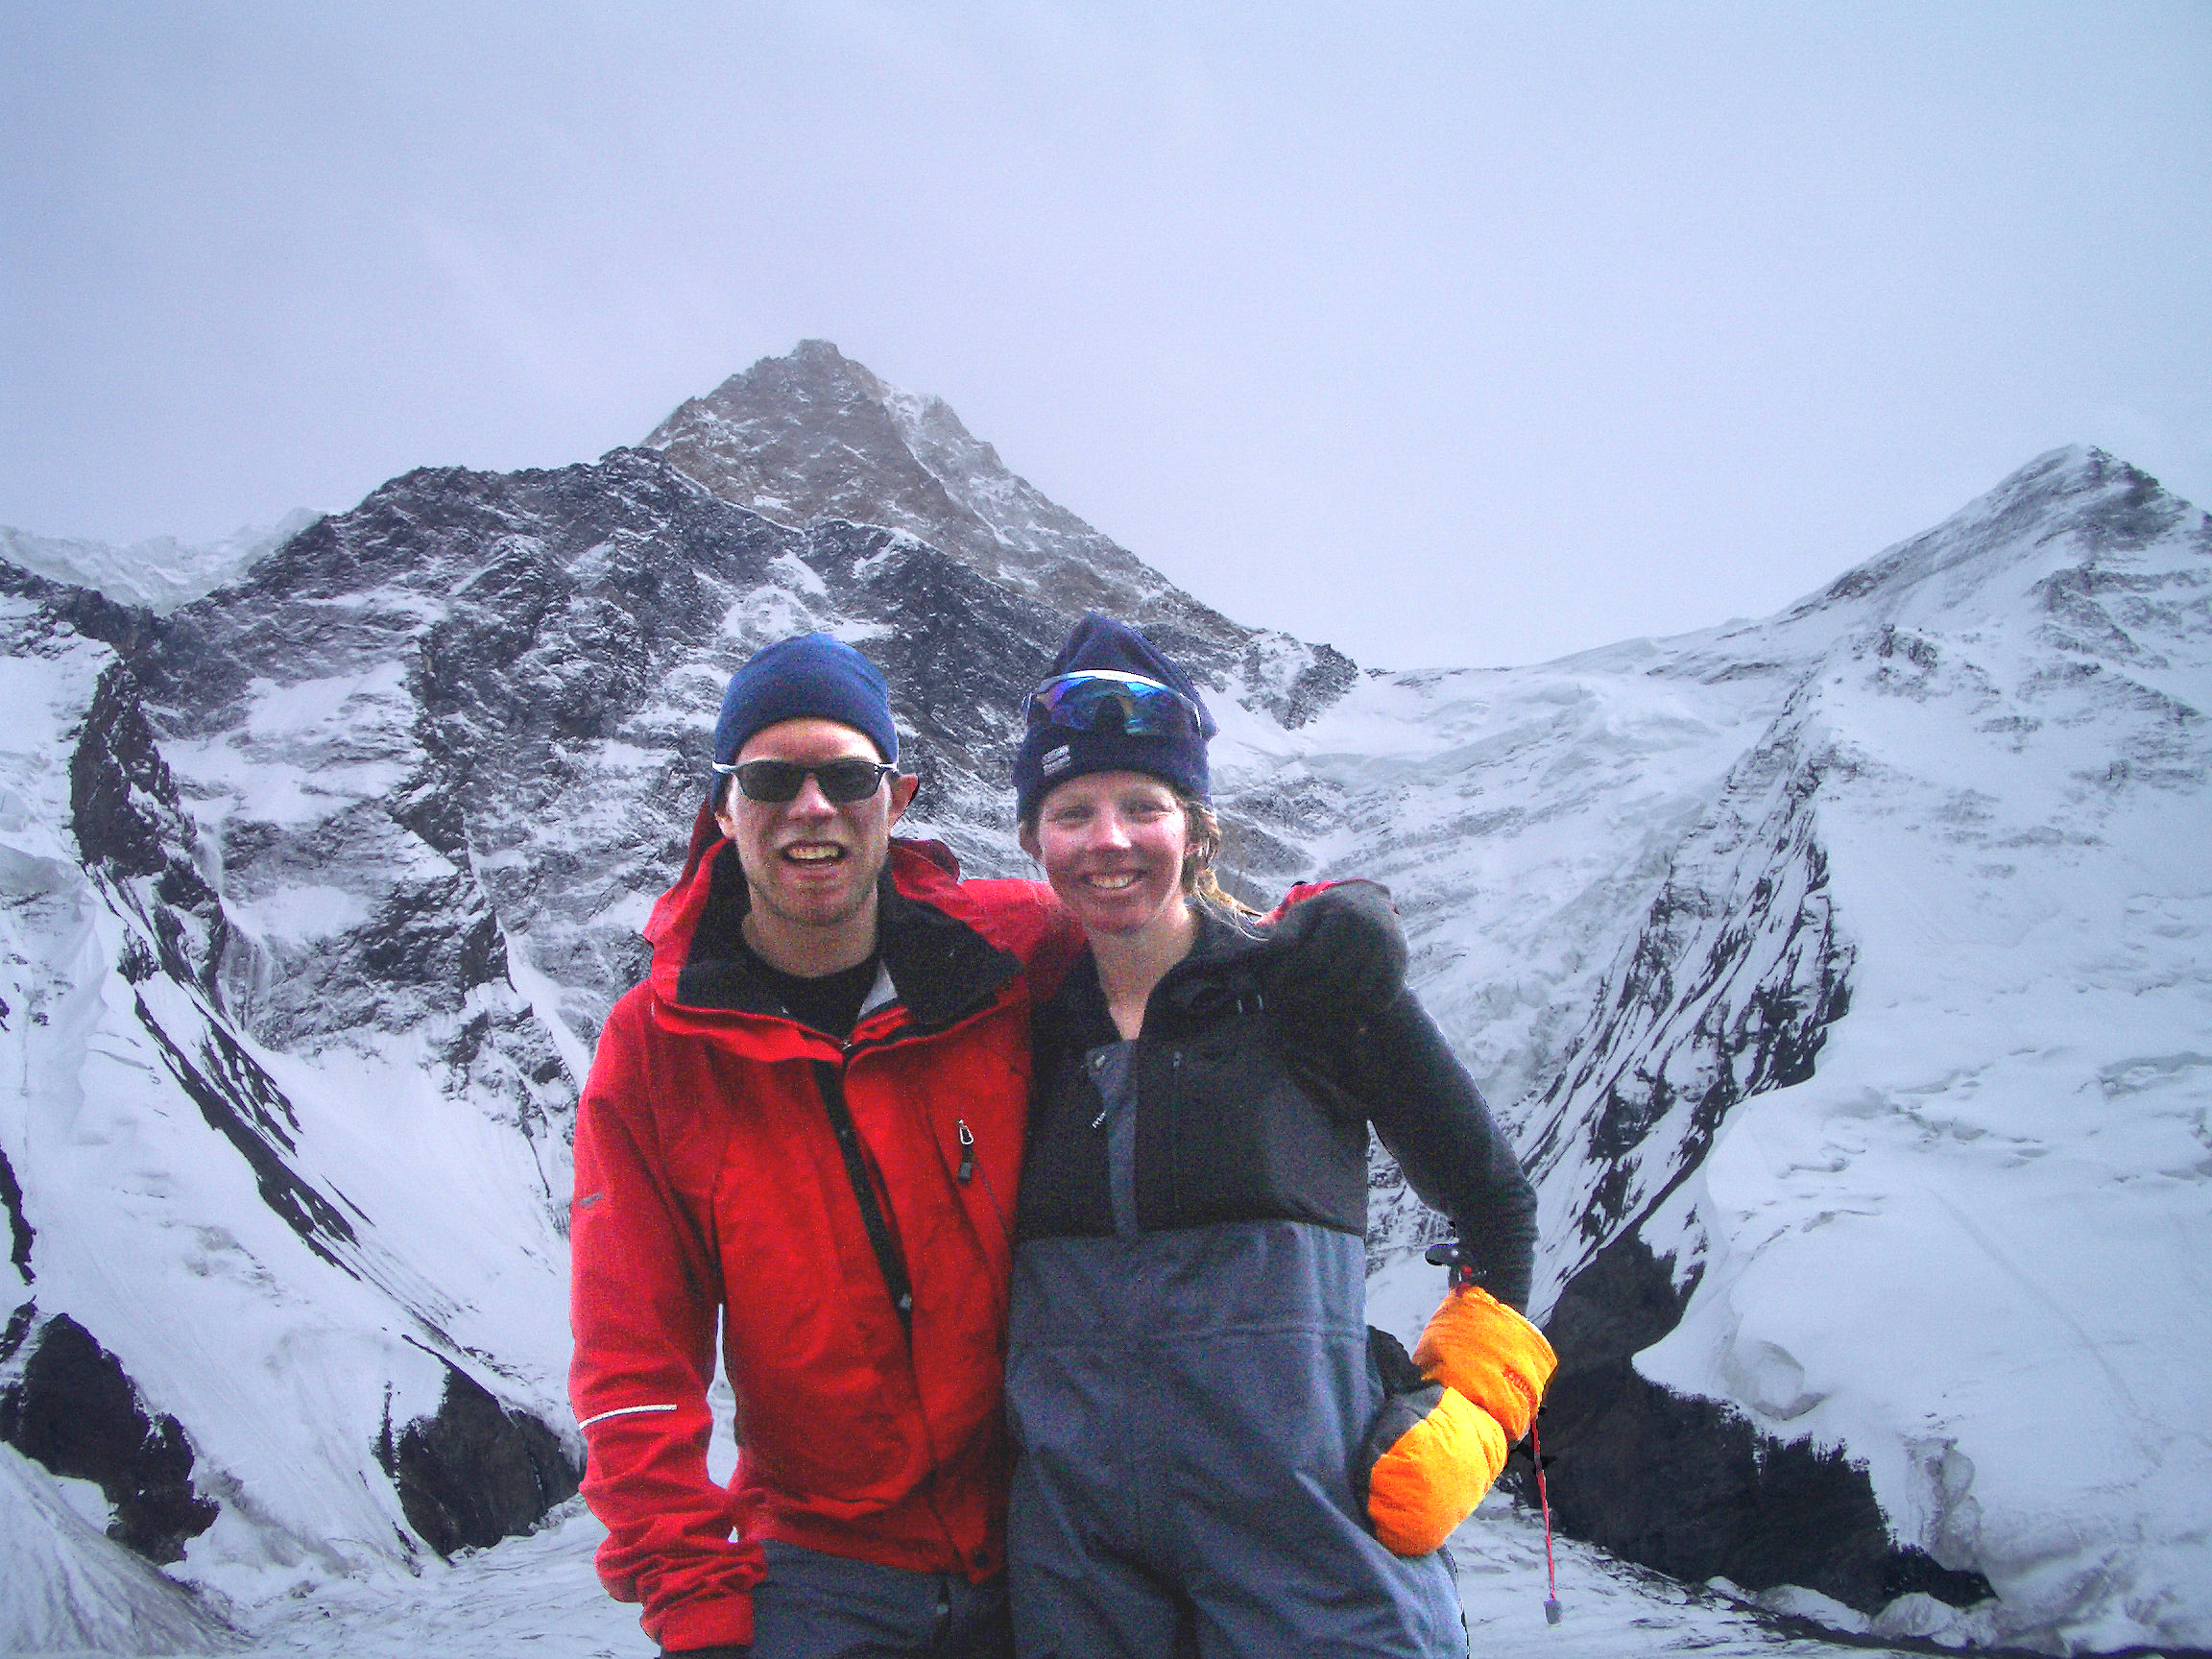 Paul and Fiona - just arrived back at basecamp, Khan Tengri